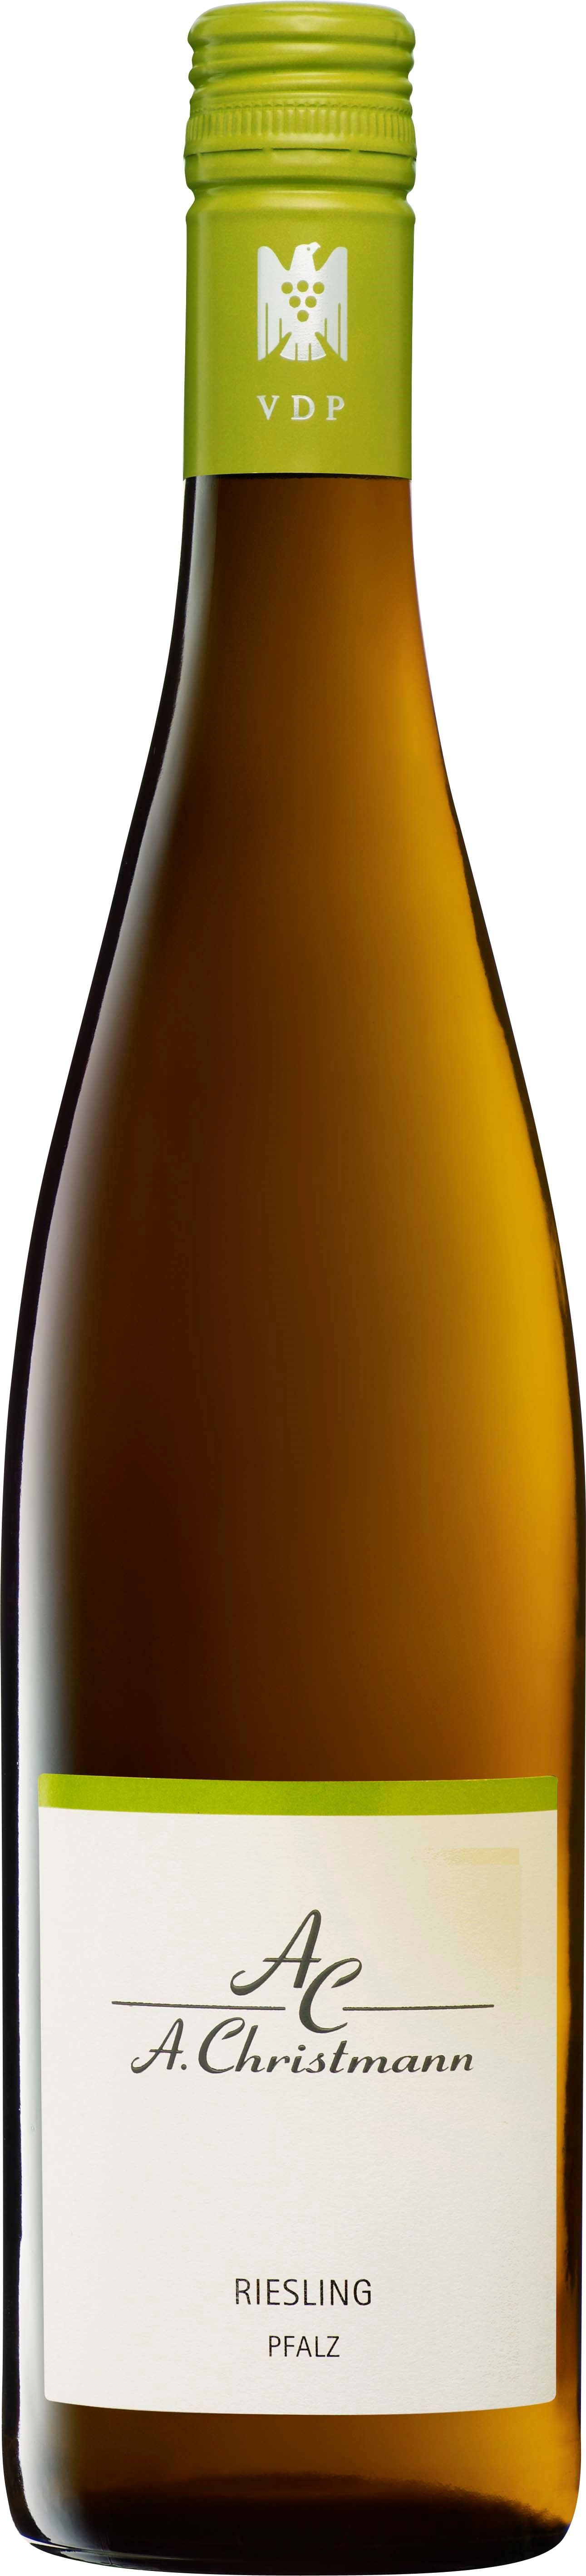 A. Christmann, Riesling, 2015